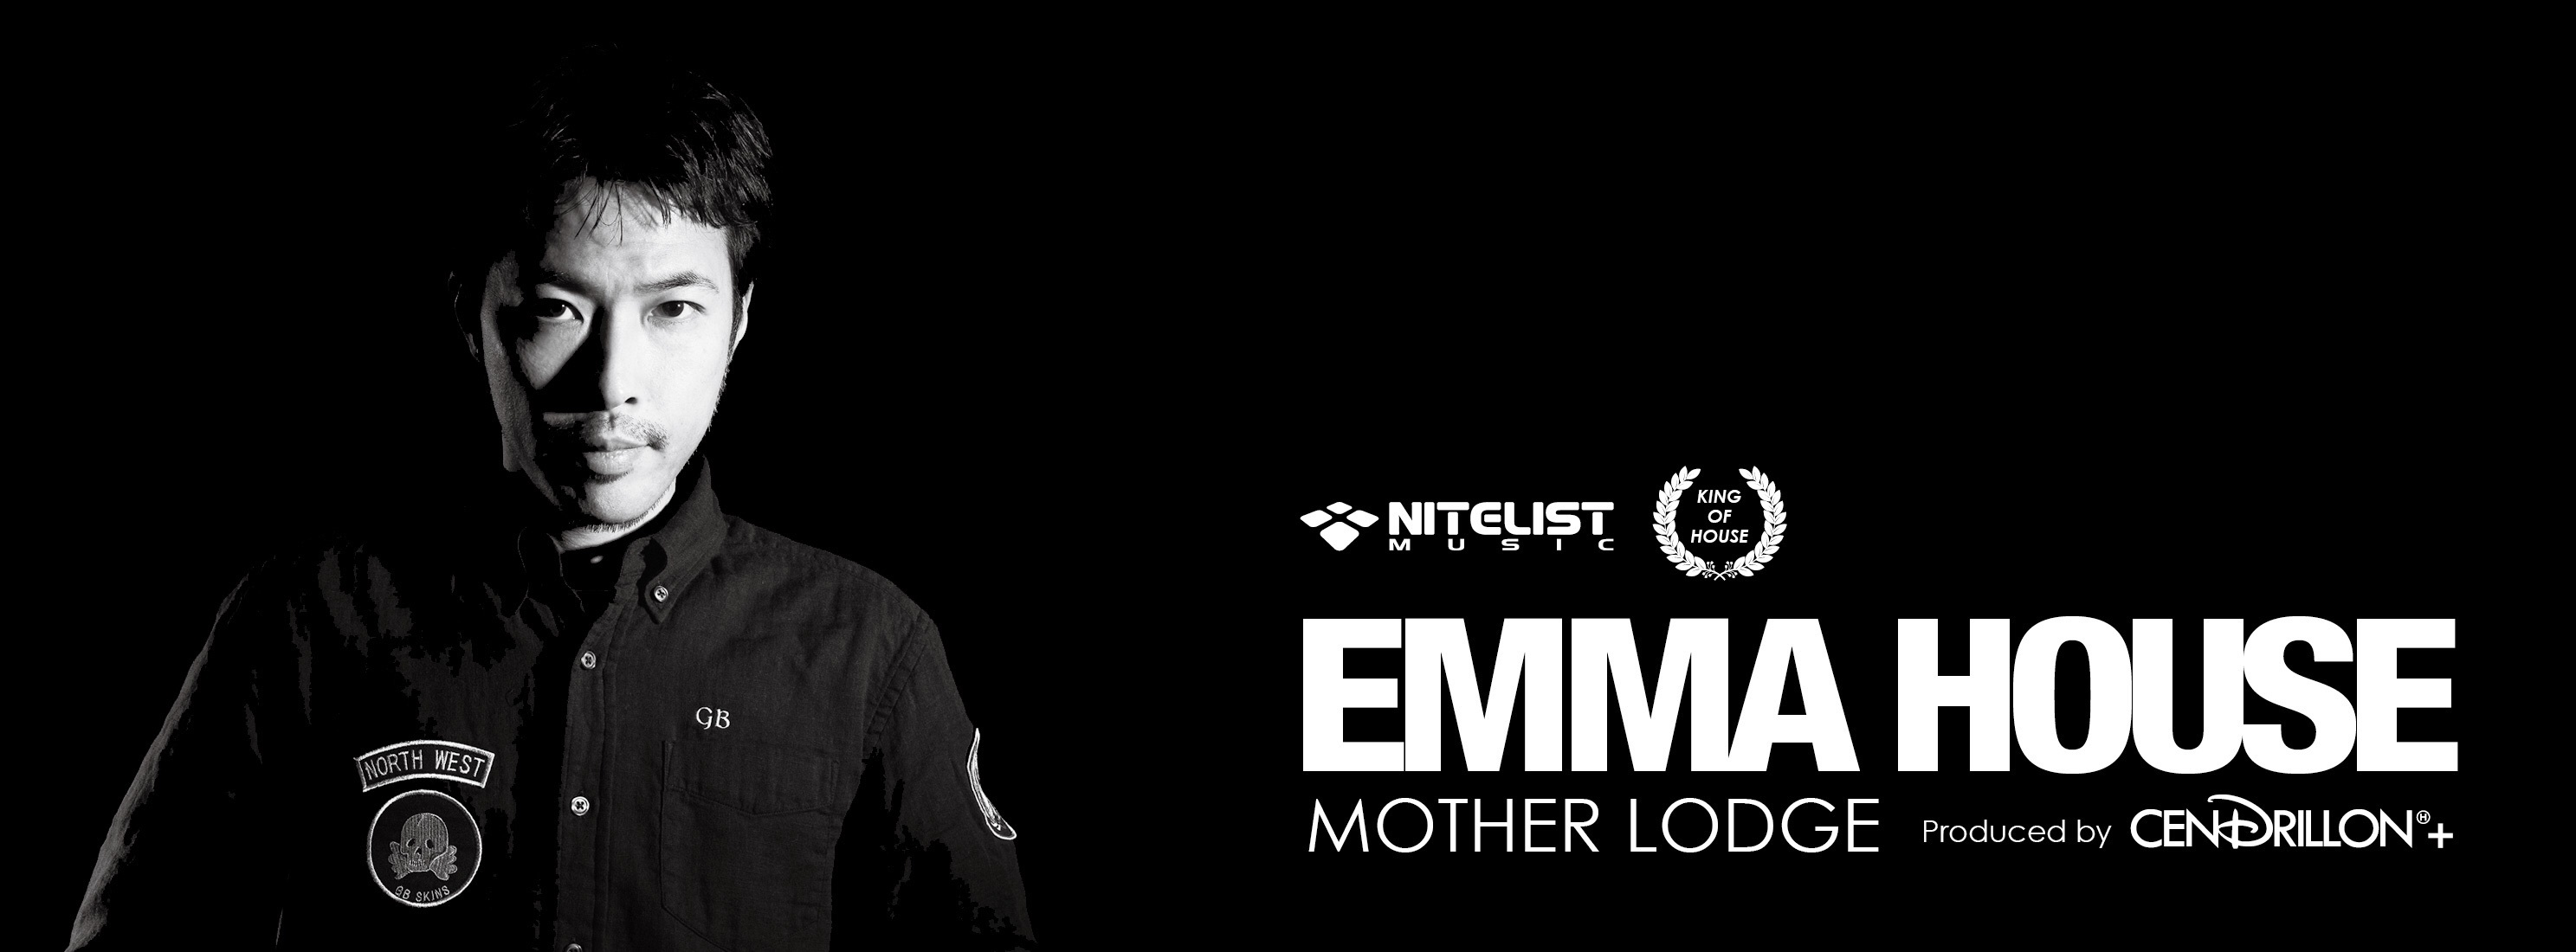 02.28.SAT 2015 - EMMA HOUSE ❌ Mother Lodge - @clubBIBROS_f0148146_11040340.jpg